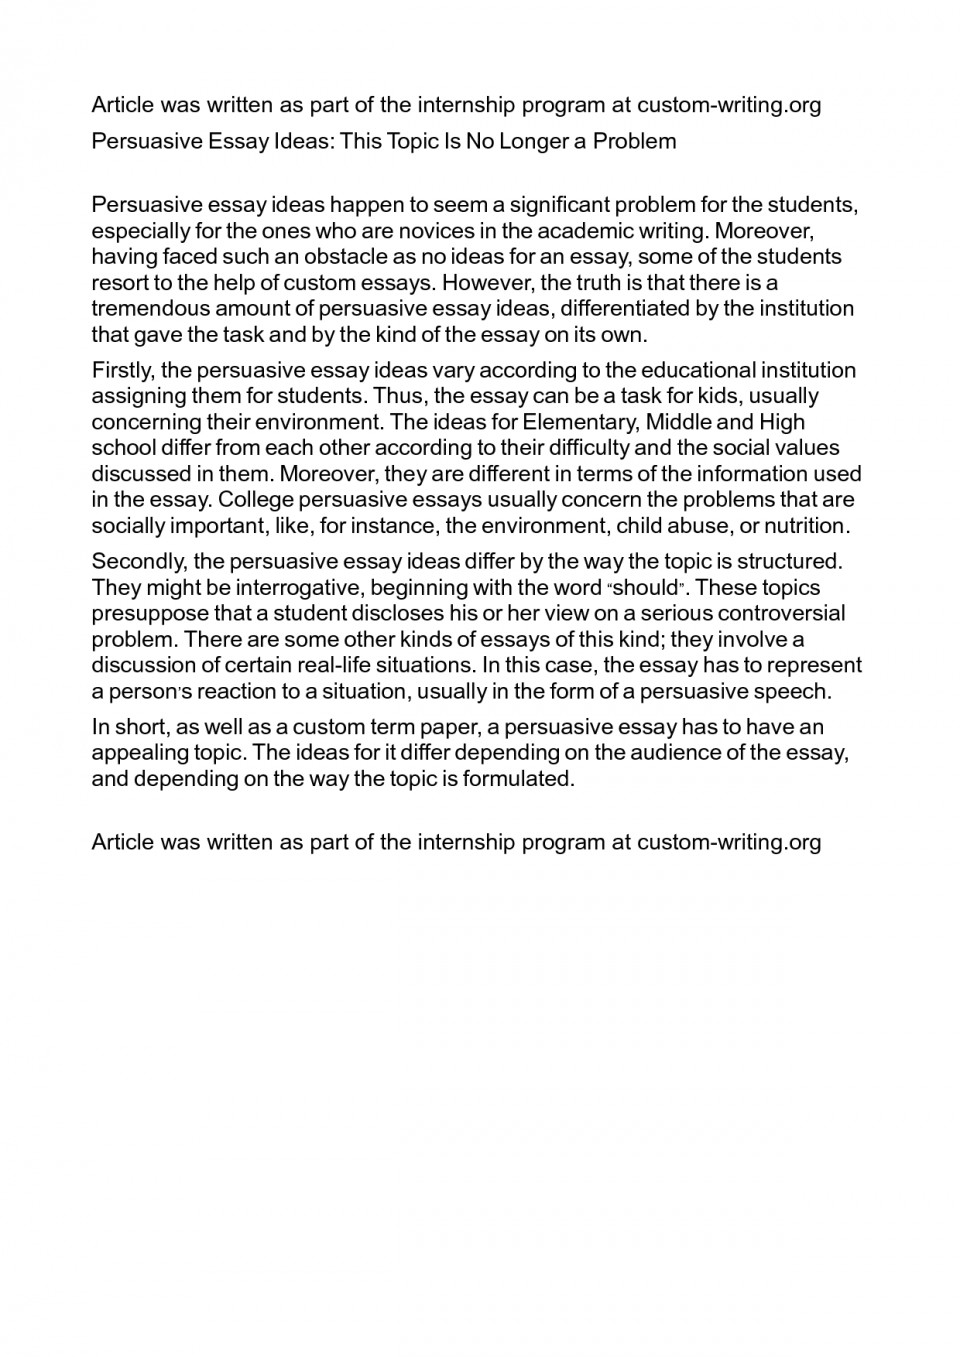 019 Essay Example Persuasive Topics Middle 480361 Essays For Shocking School Informative Writing Leadership High Students 960